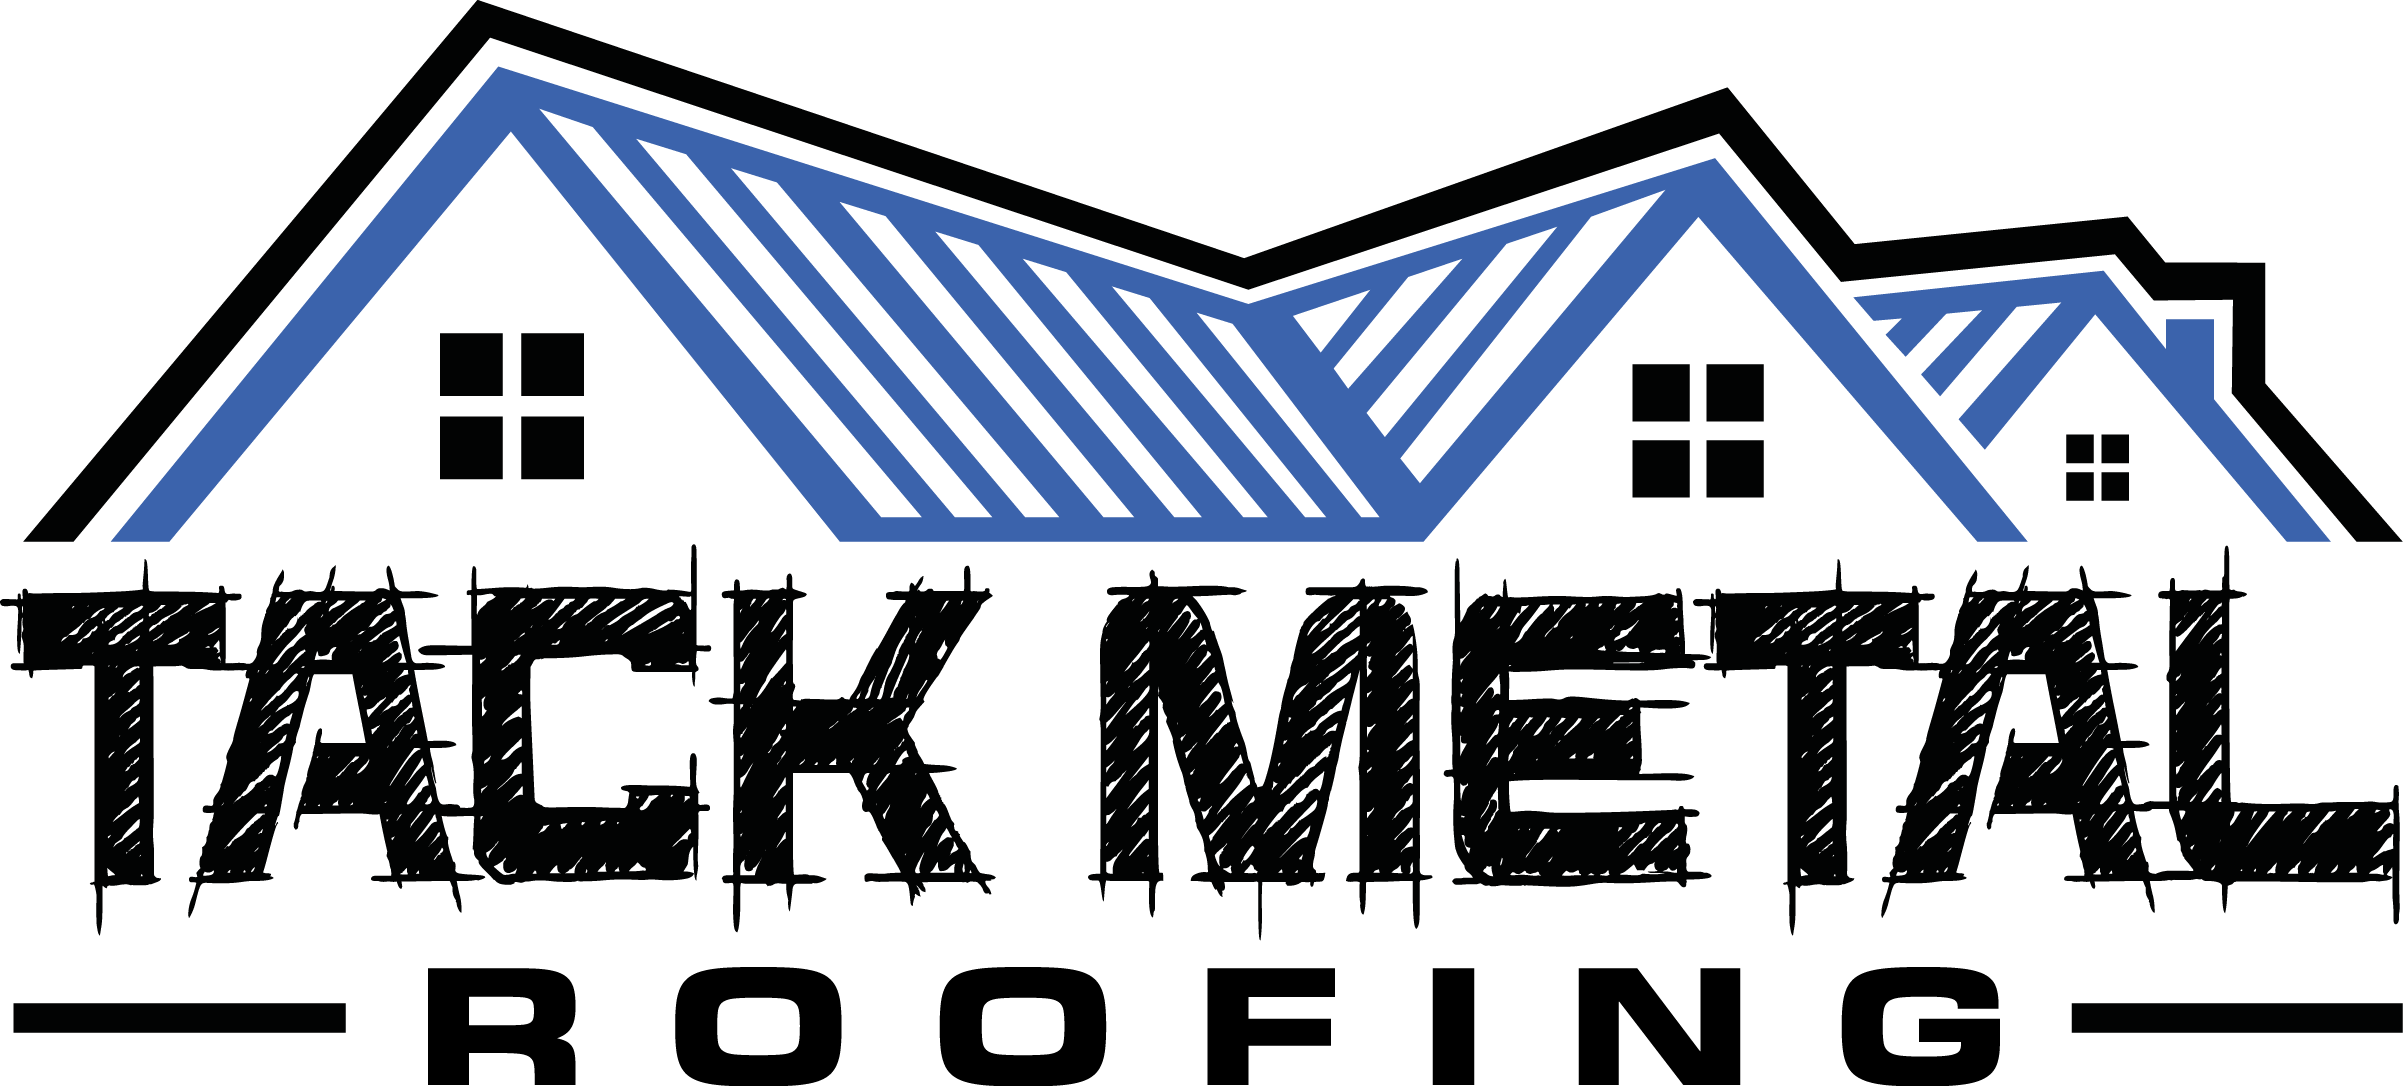 Weight clipart metal. Tack roofing mfg frewsburg